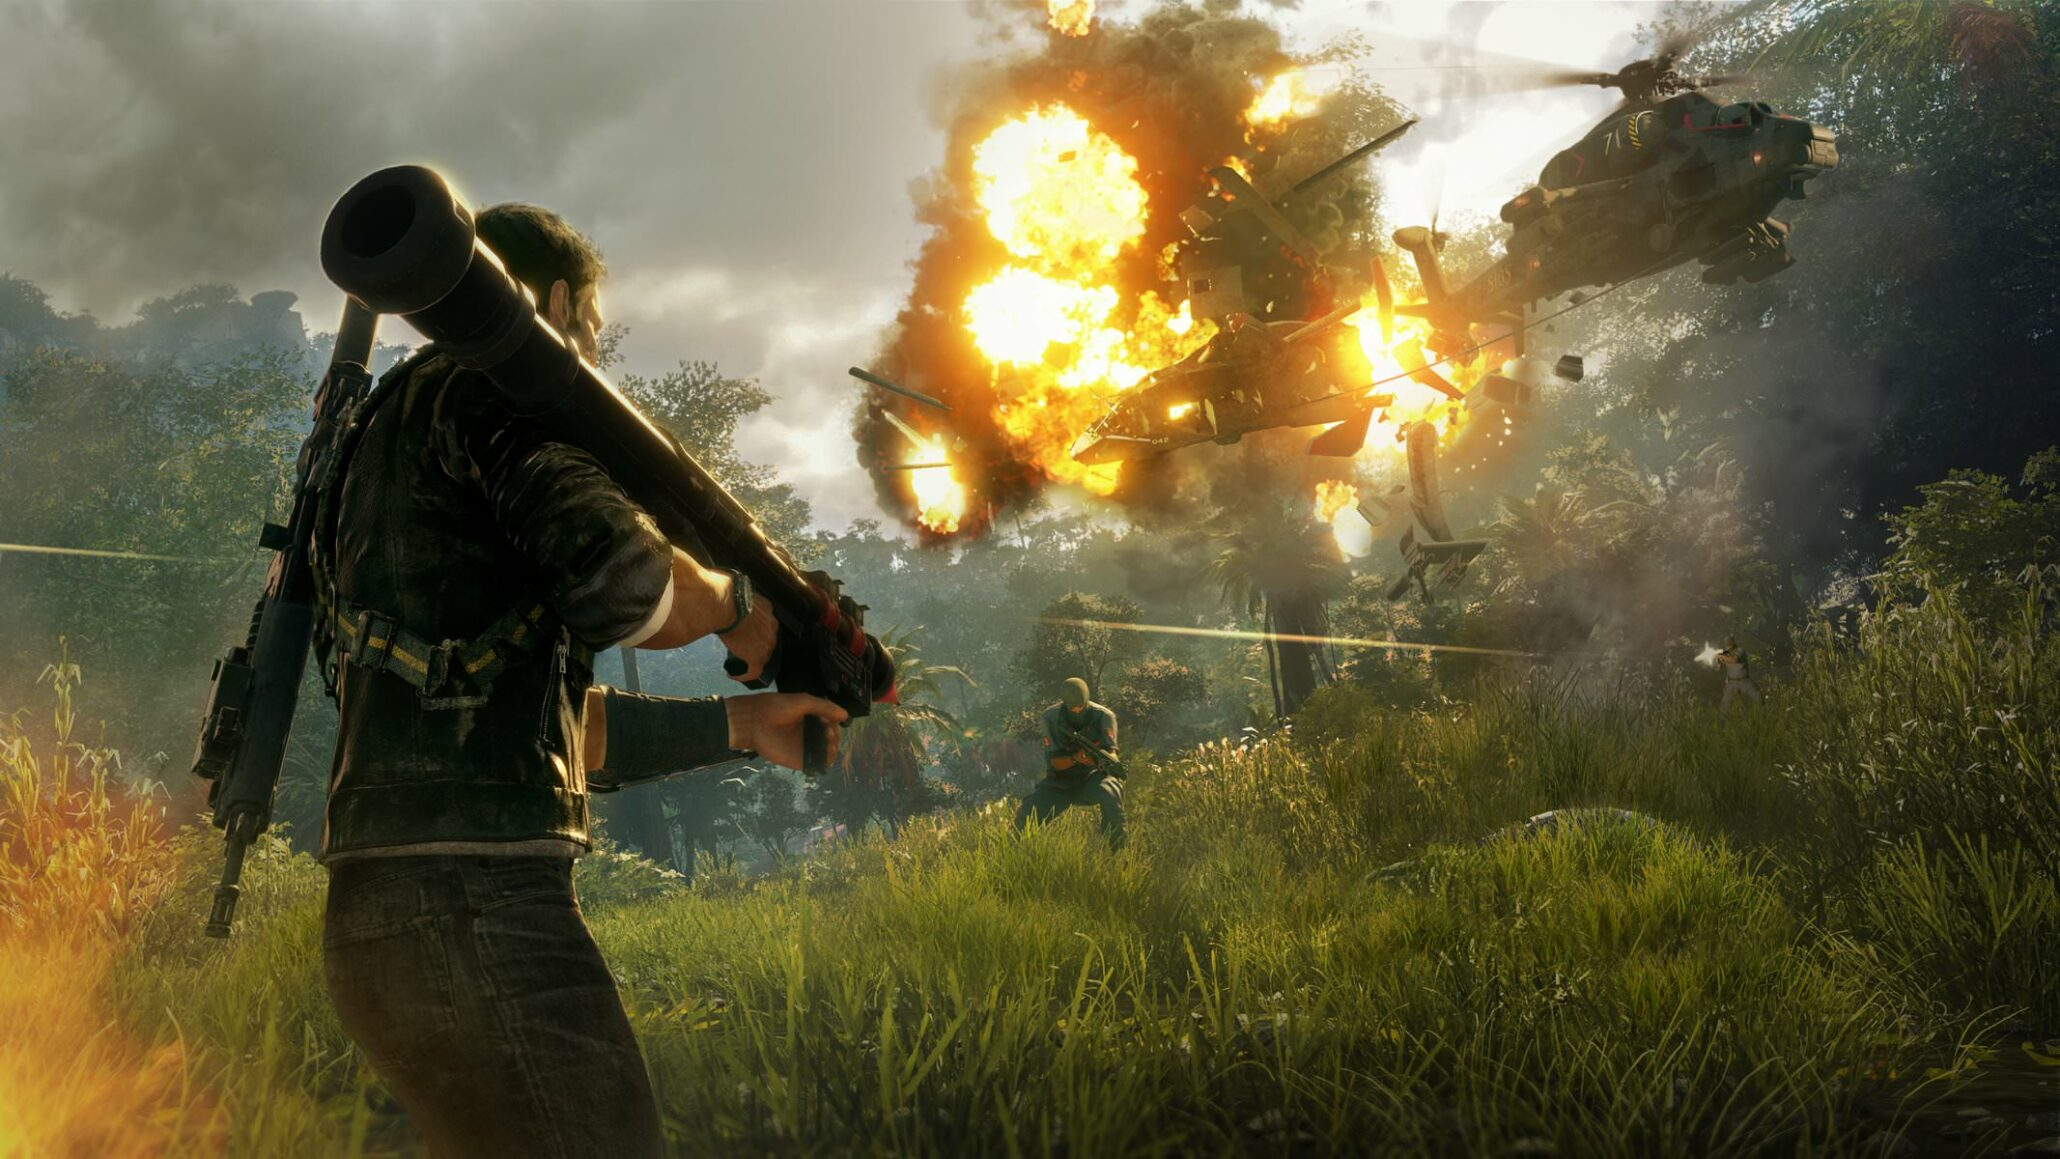 Just Cause 4 Wallpaper: First Batch Of Just Cause 4 Screenshots Leaked Online